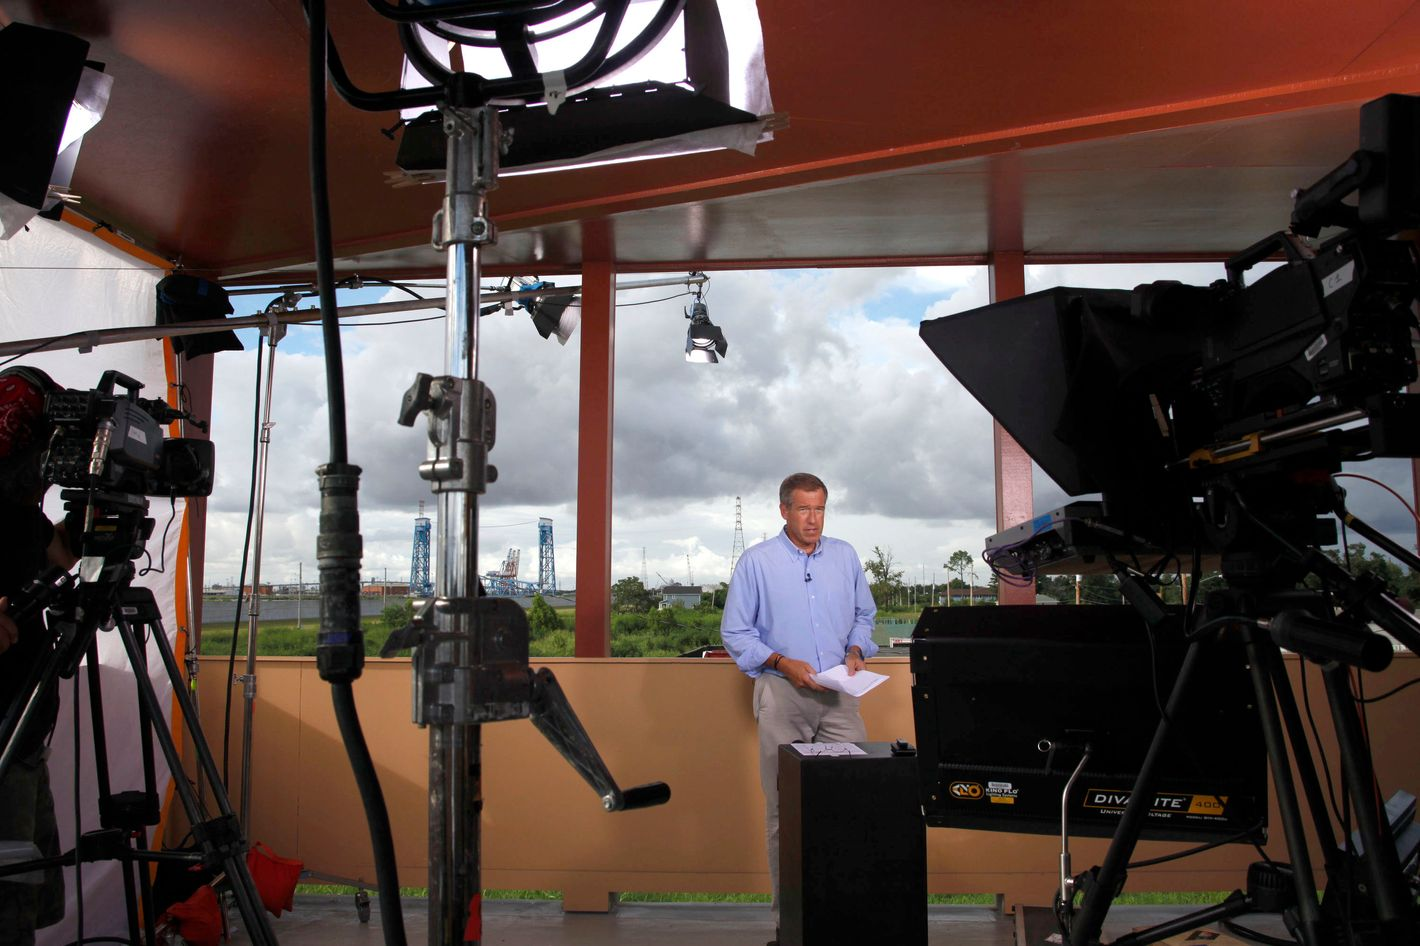 NBC NIGHTLY NEWS WITH BRIAN WILLIAMS -- Pictured: Brian Williams -- NBC News' Brian Williams anchors live from the lower 9th ward in New Orleans, five years after Hurricane Katrina devastated the region -- Photo by: Judi Bottoni/NBC/NBC NewsWire